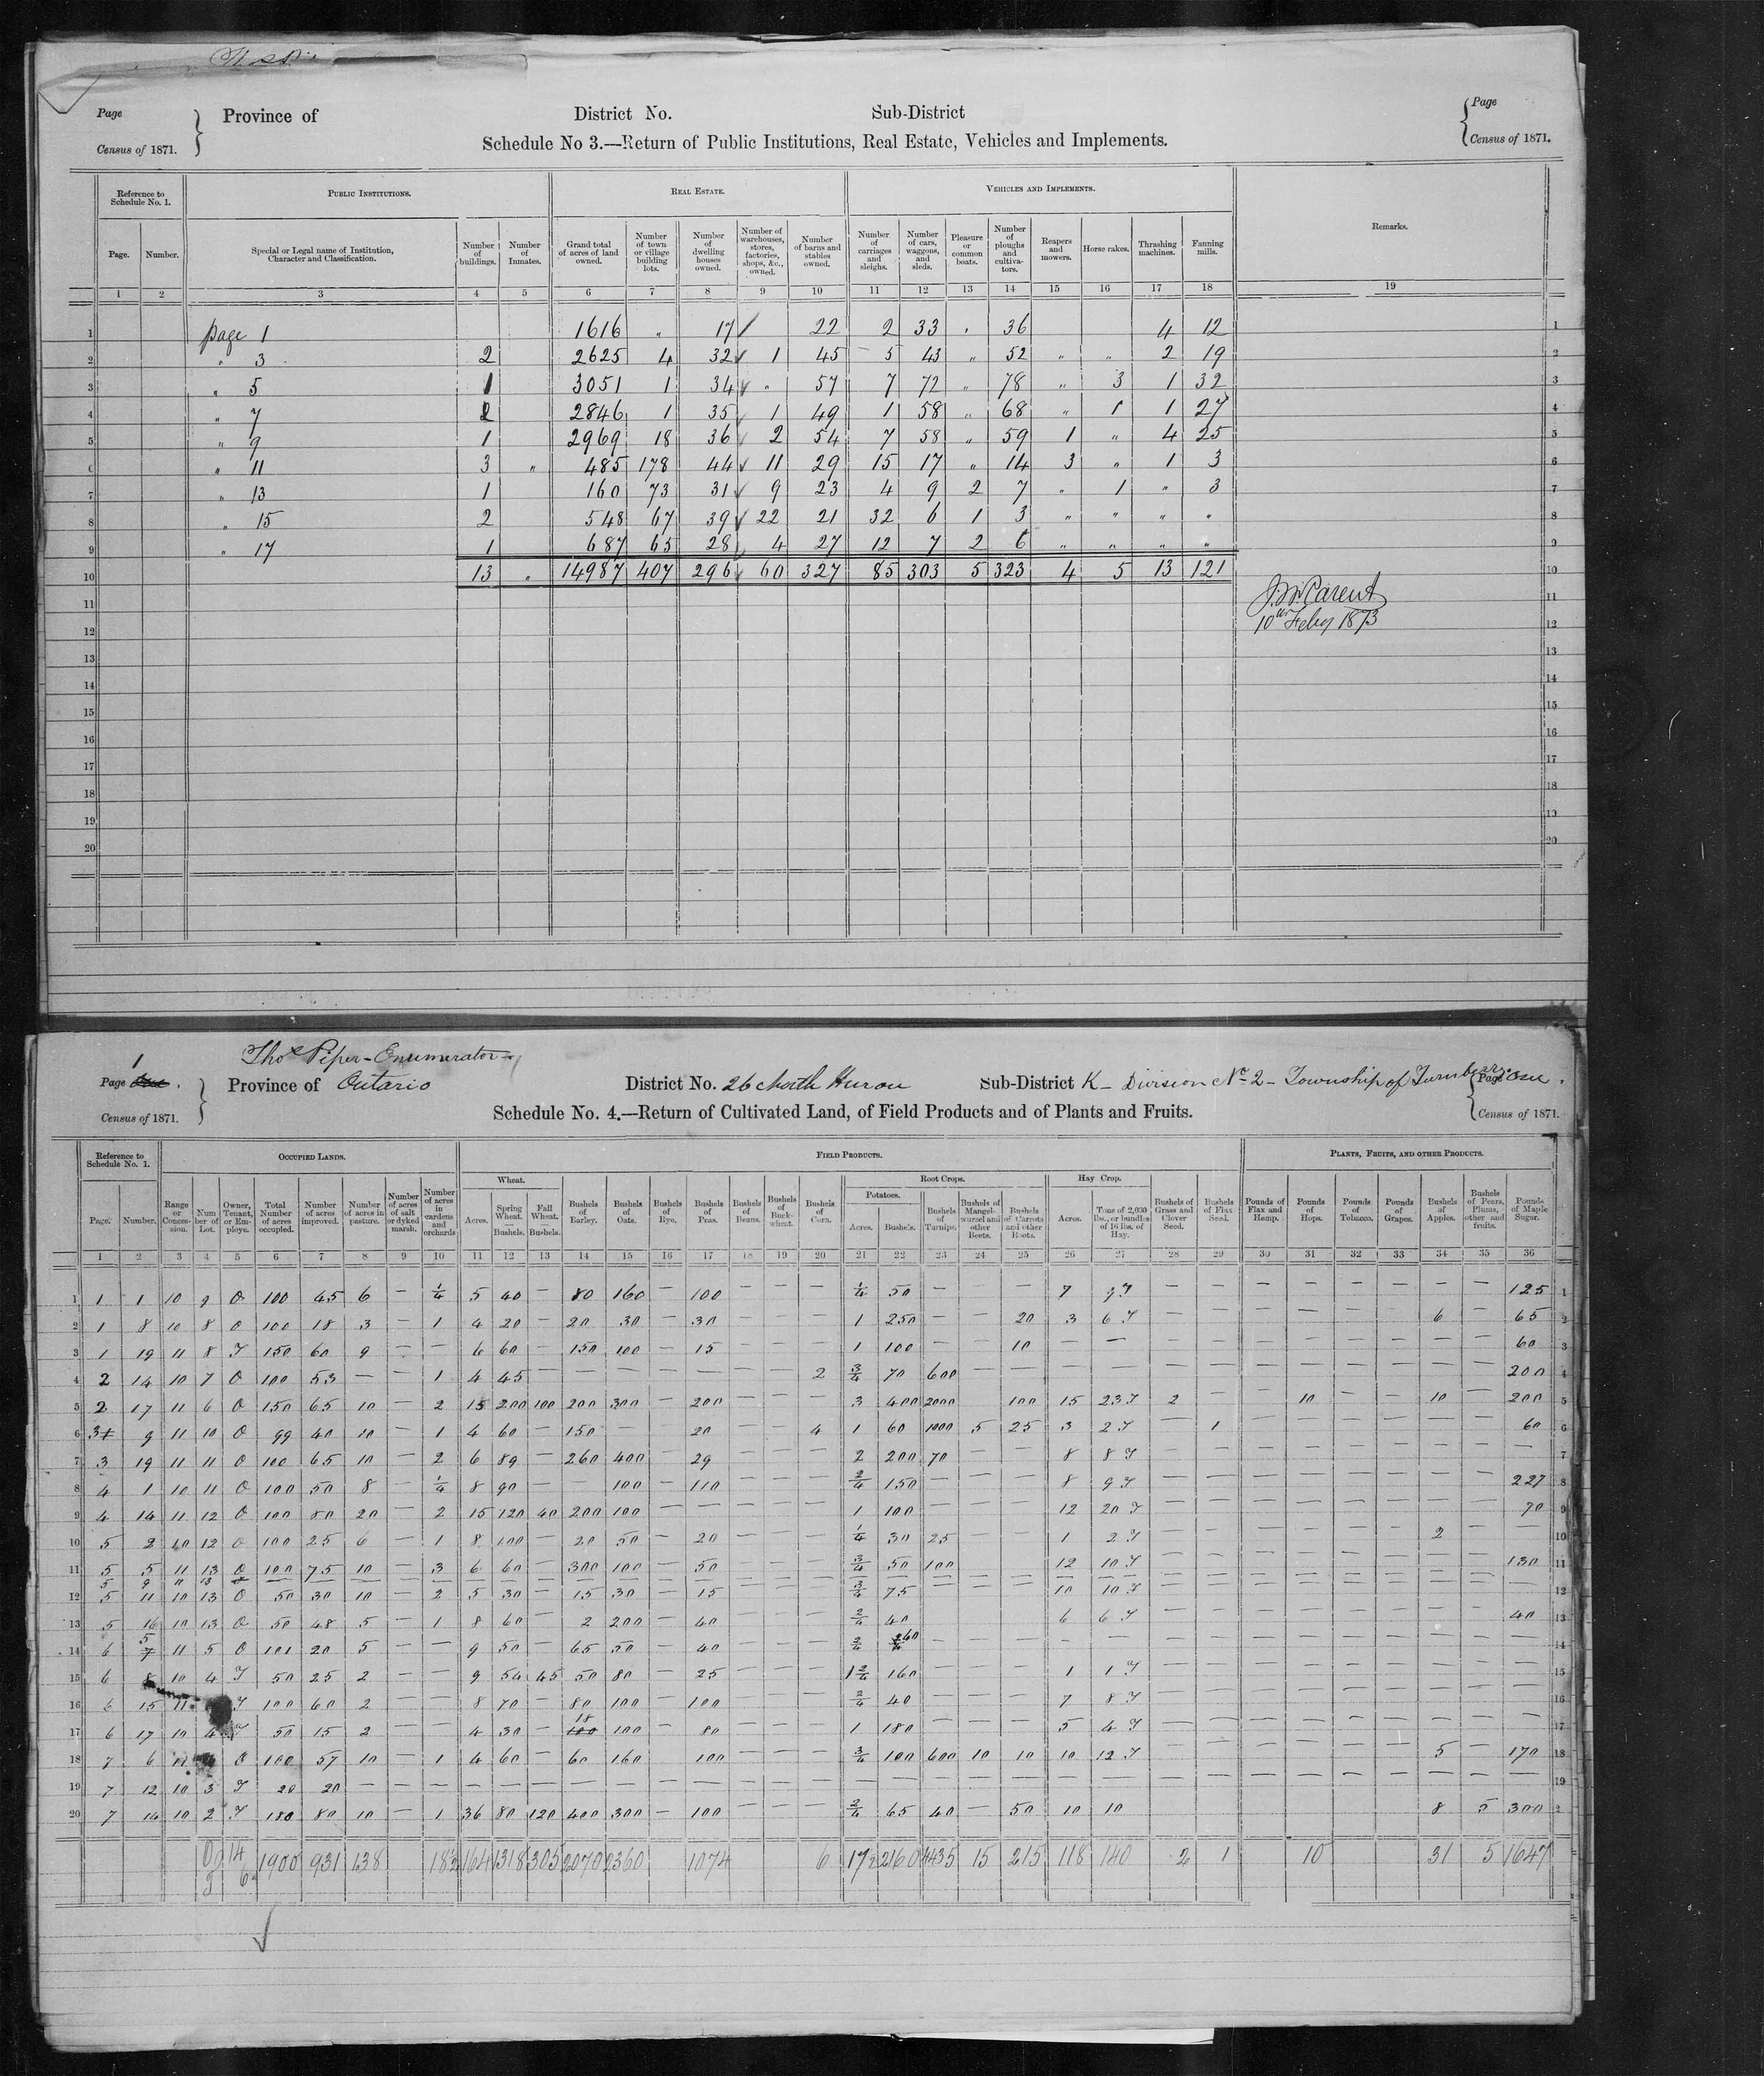 Title: Census of Canada, 1871 - Mikan Number: 142105 - Microform: c-9933